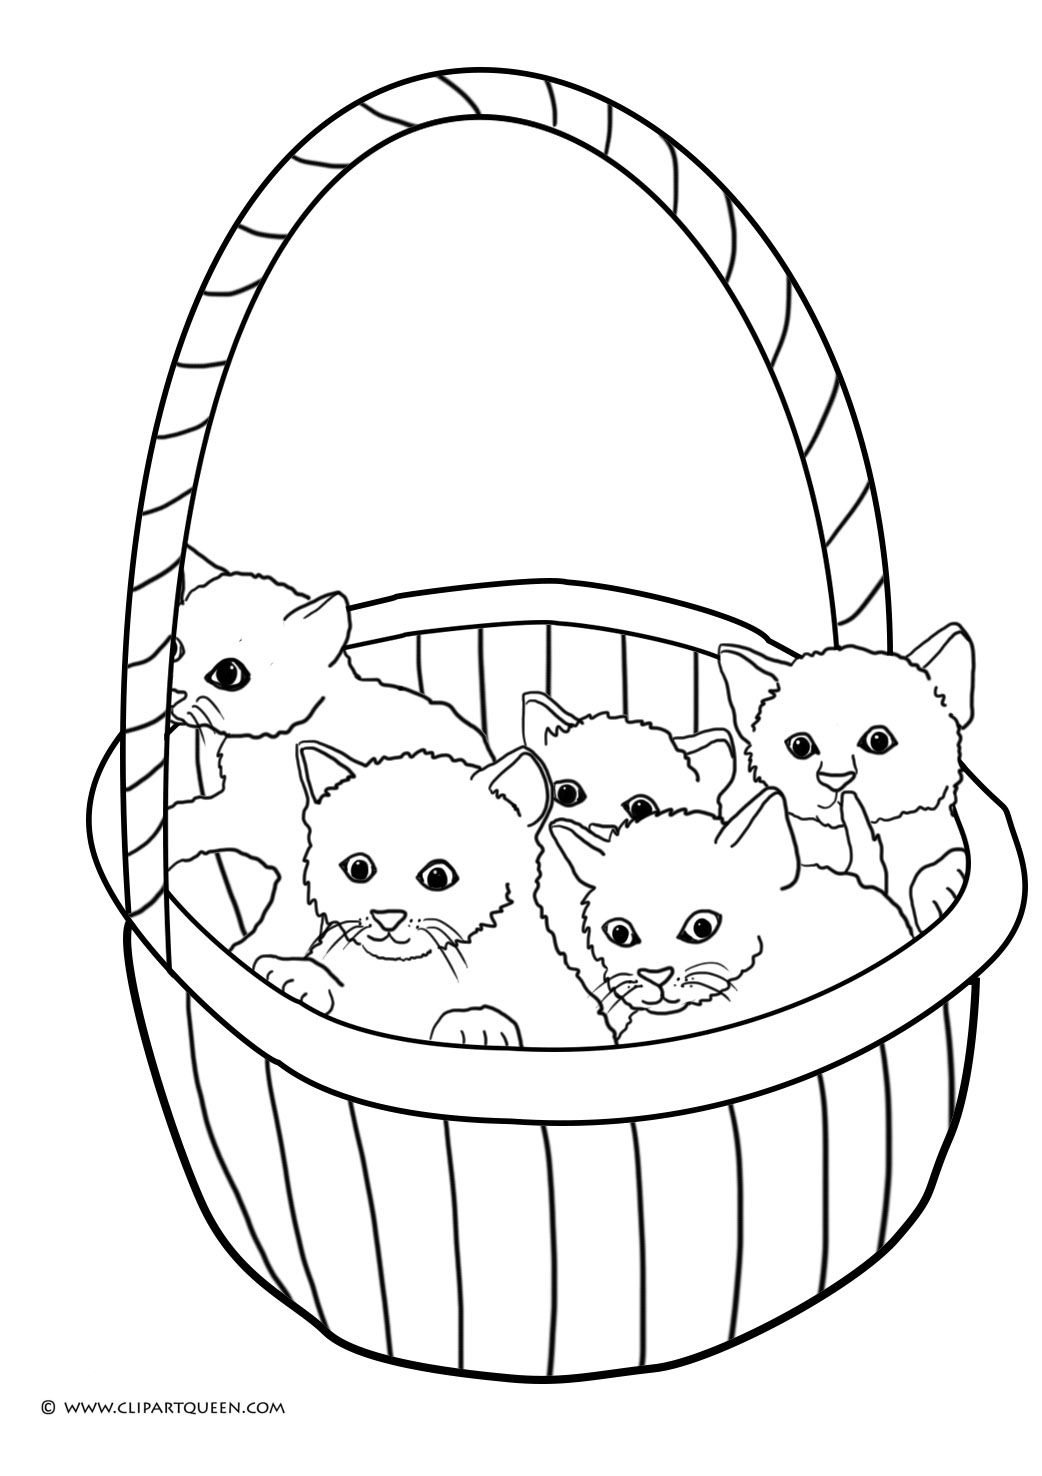 coloring pages kitten cute cat animal coloring pages for kids to print color kitten coloring pages